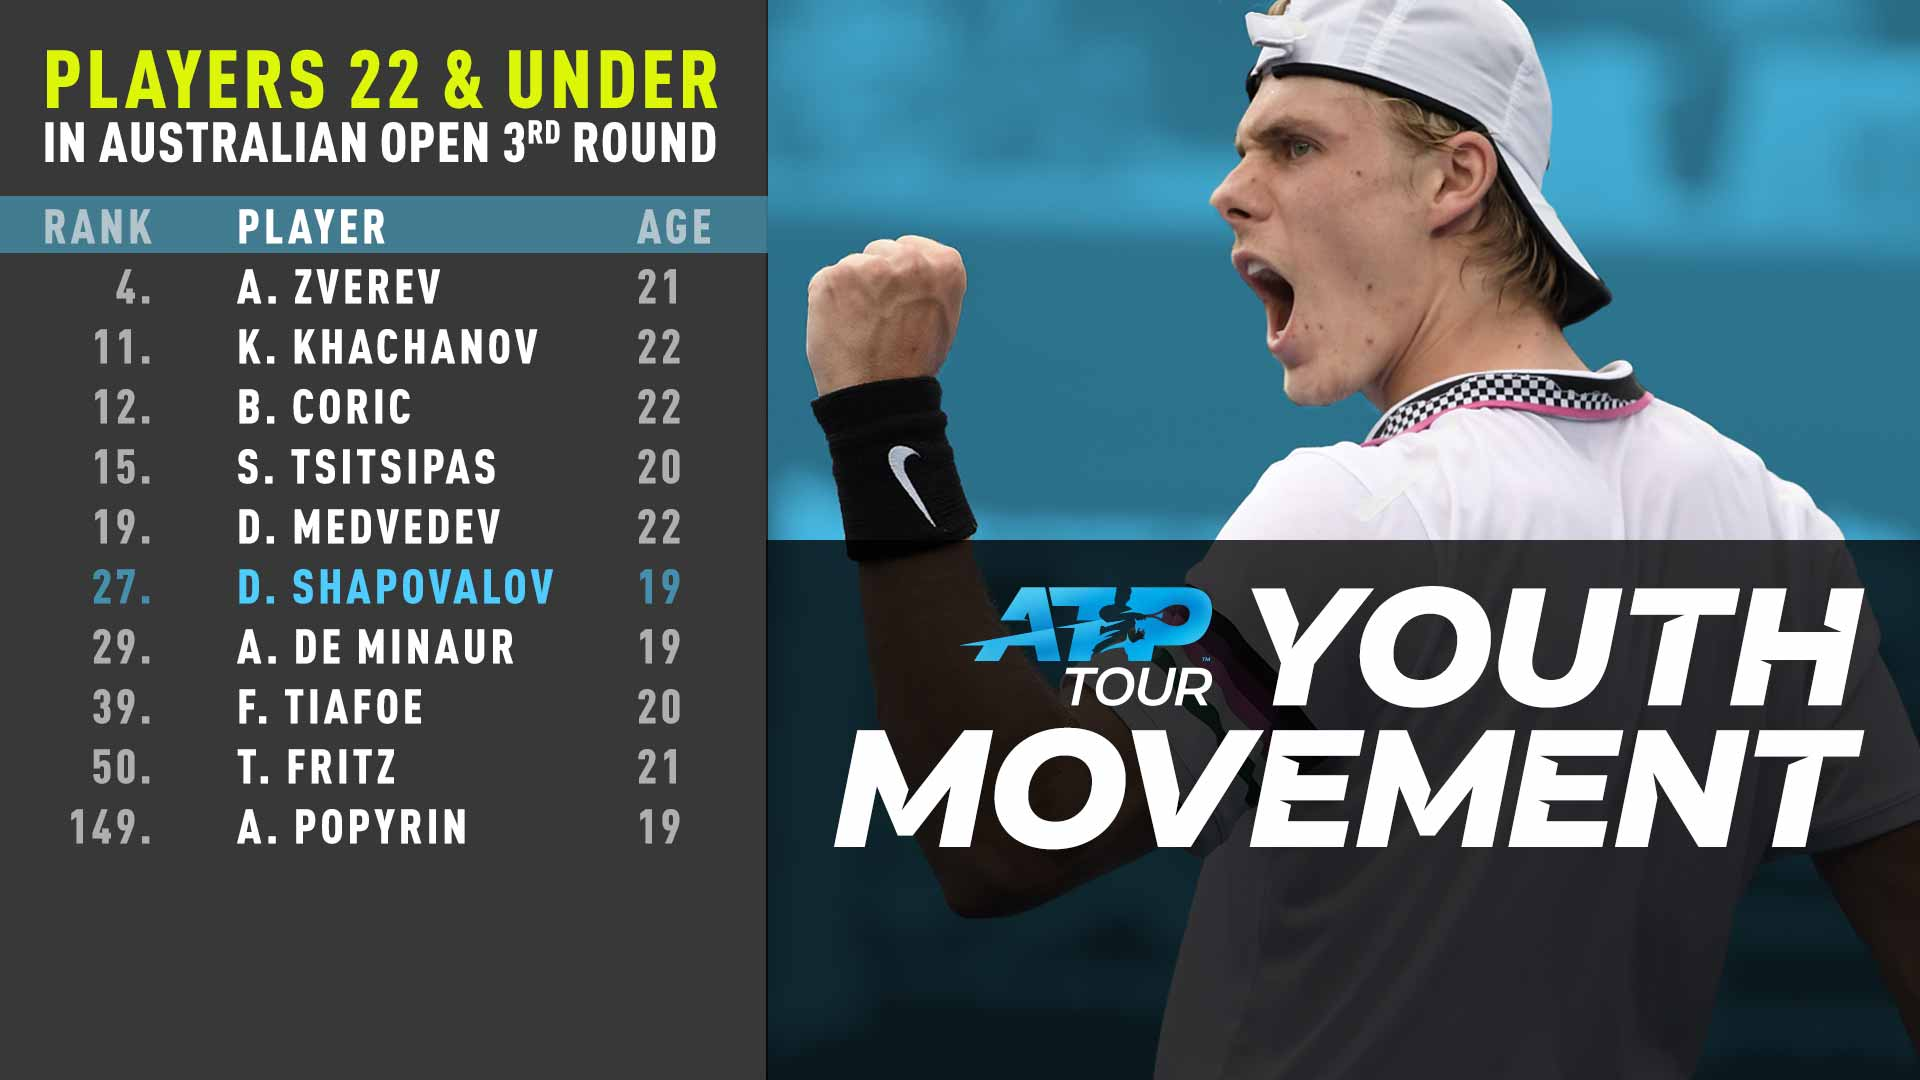 Denis Shapovalov is one of 10 players under 23 to reach the Australian Open third round.